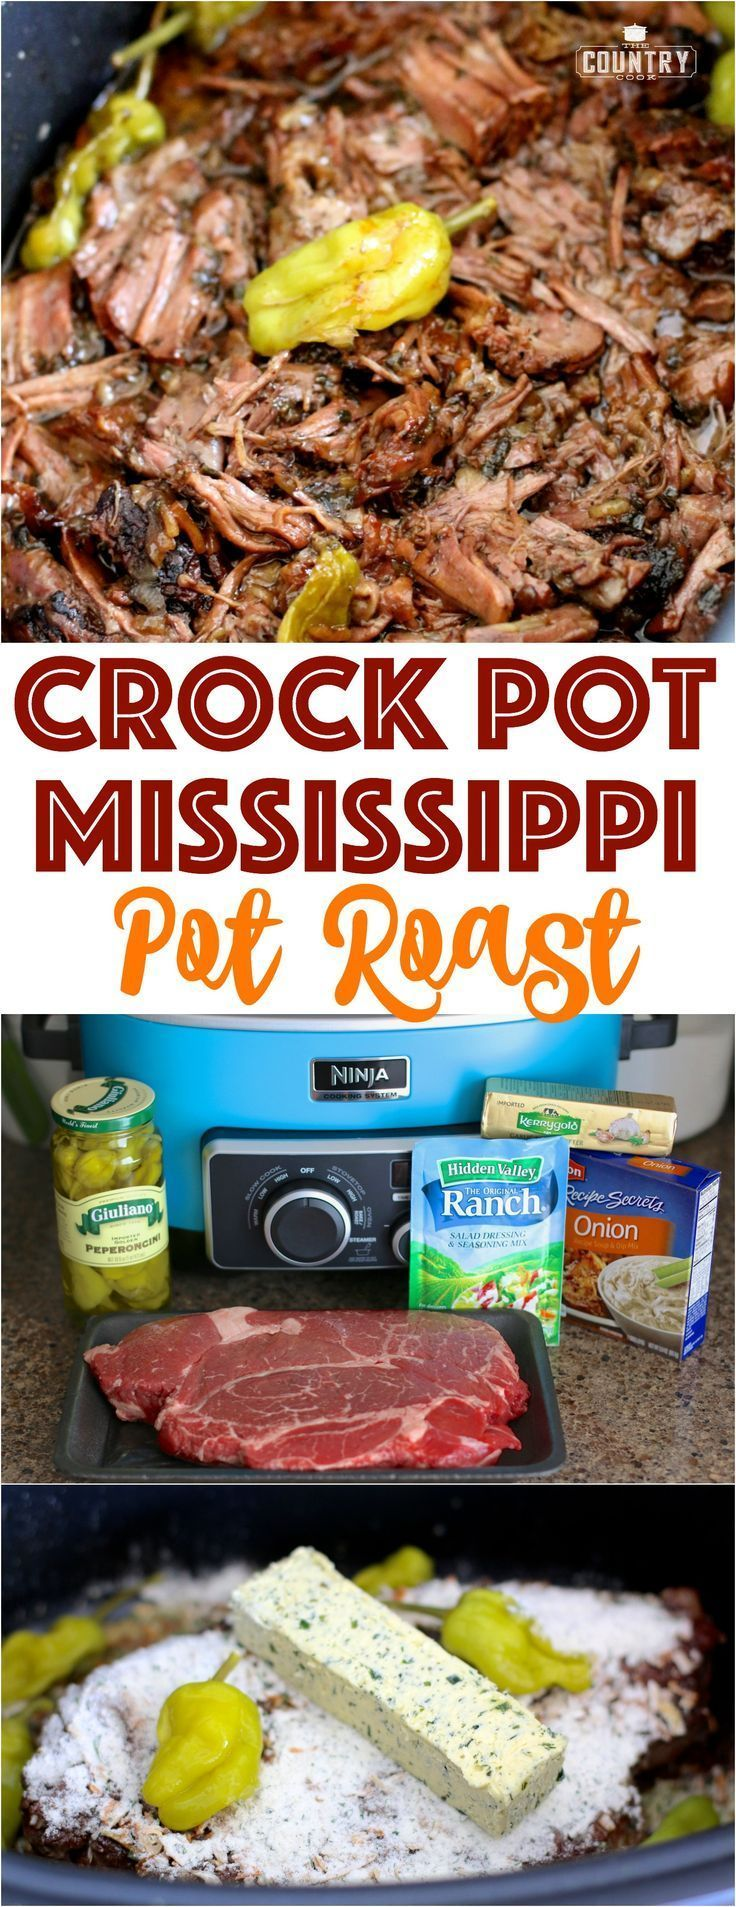 Crock Pot Mississippi Pot Roast recipe from The Country Cook